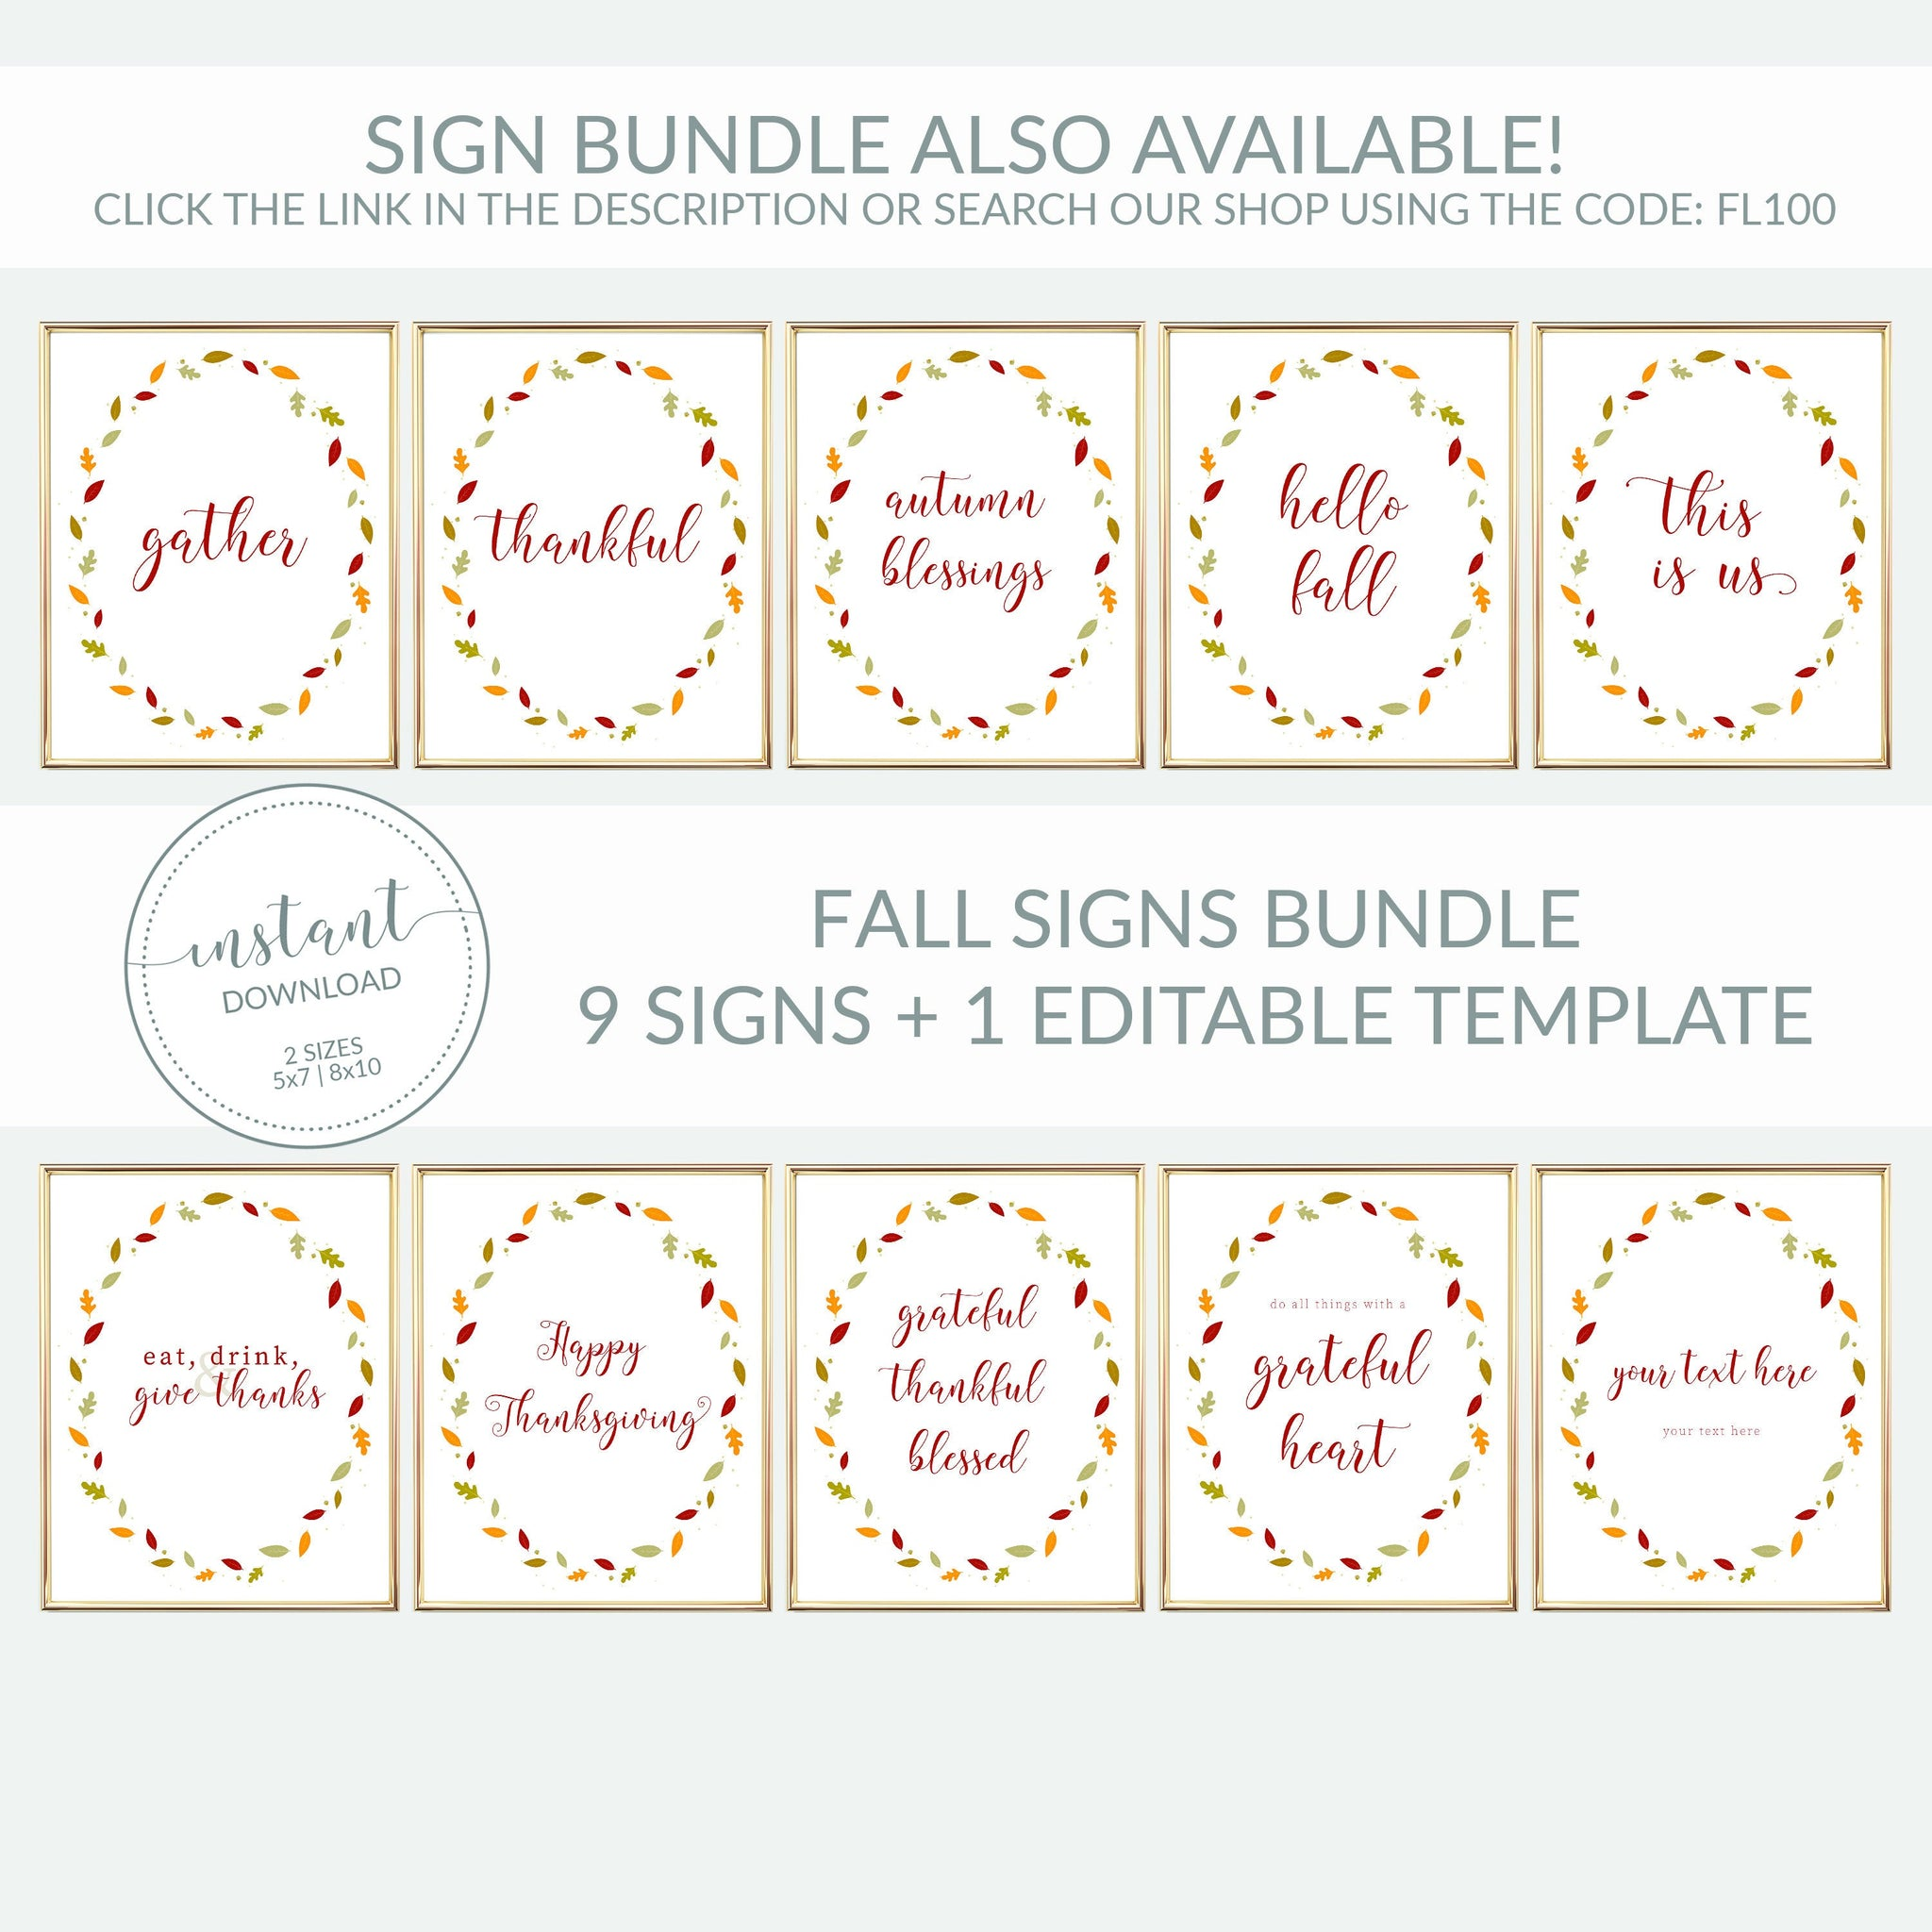 Friendsgiving Gift Tag Printable, Personalized Friendsgiving Favors Tag Template, Thankful For You, Editable DIGITAL DOWNLOAD FL100